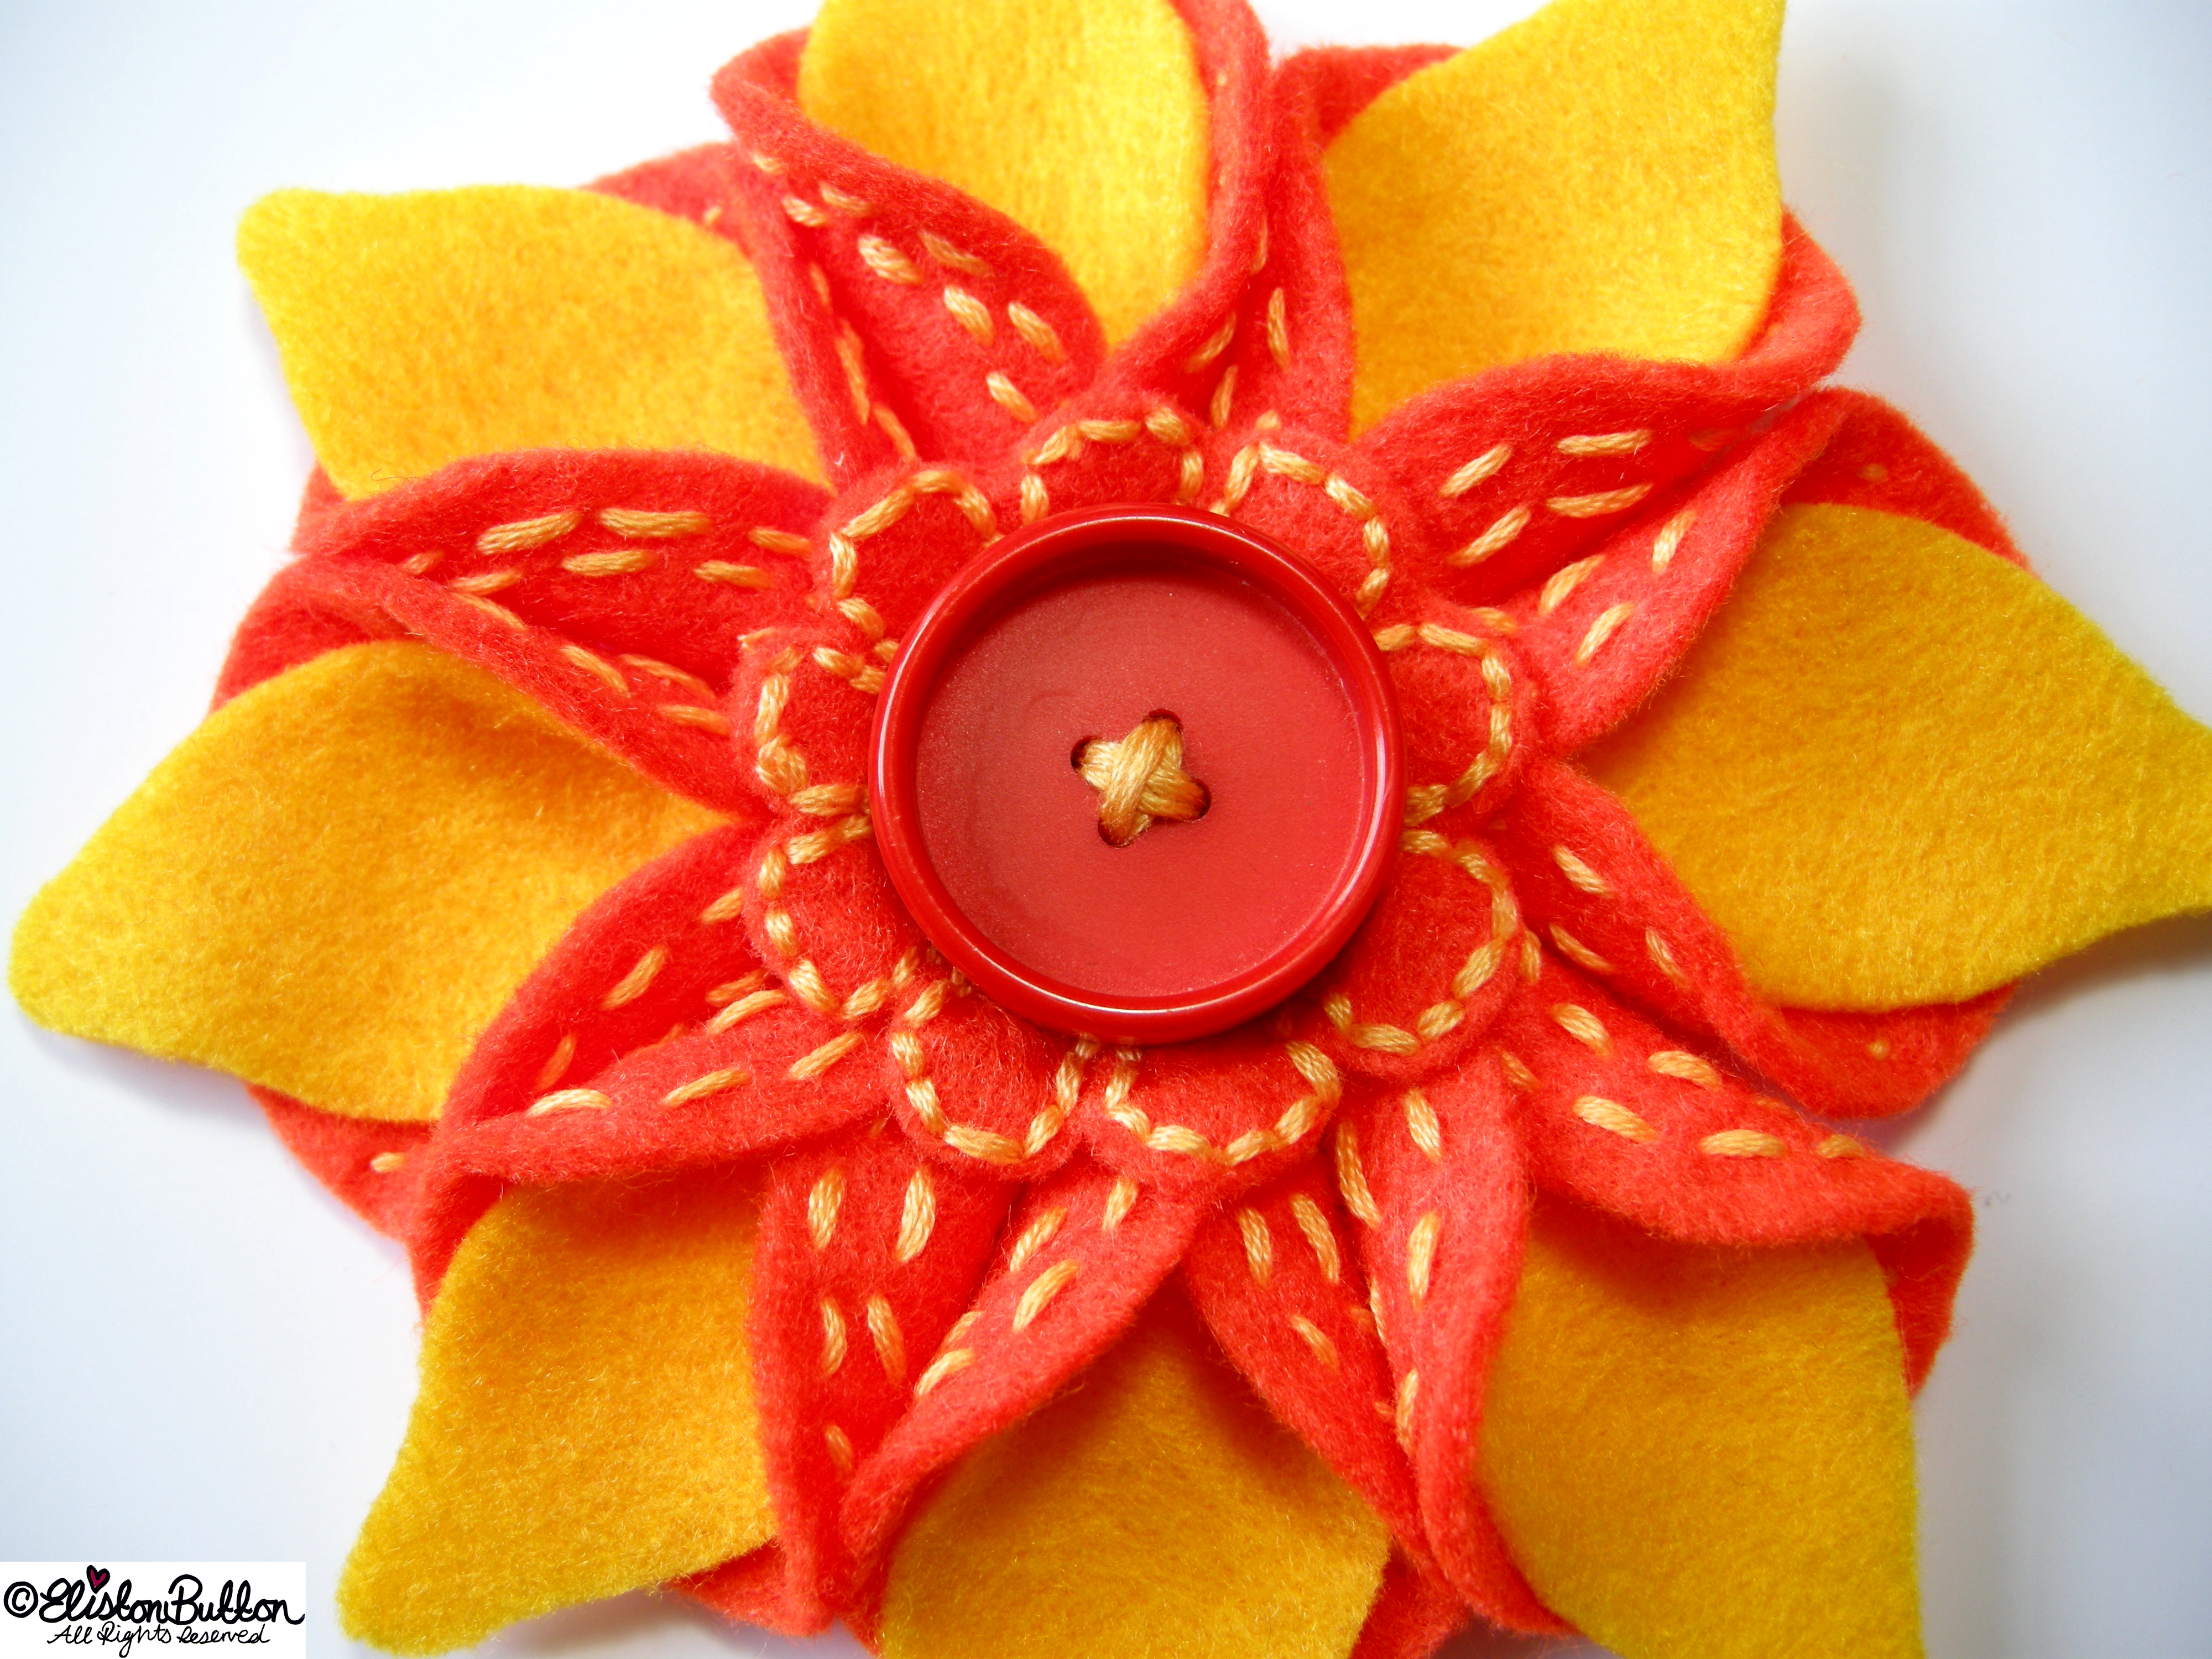 Oranges and Lemons Orange and Yellow Embroidered Felt Flower Brooch - Centrepiece Detail - 27 Before 27 - Oranges and Lemons at www.elistonbutton.com - Eliston Button - That Crafty Kid – Art, Design, Craft & Adventure.